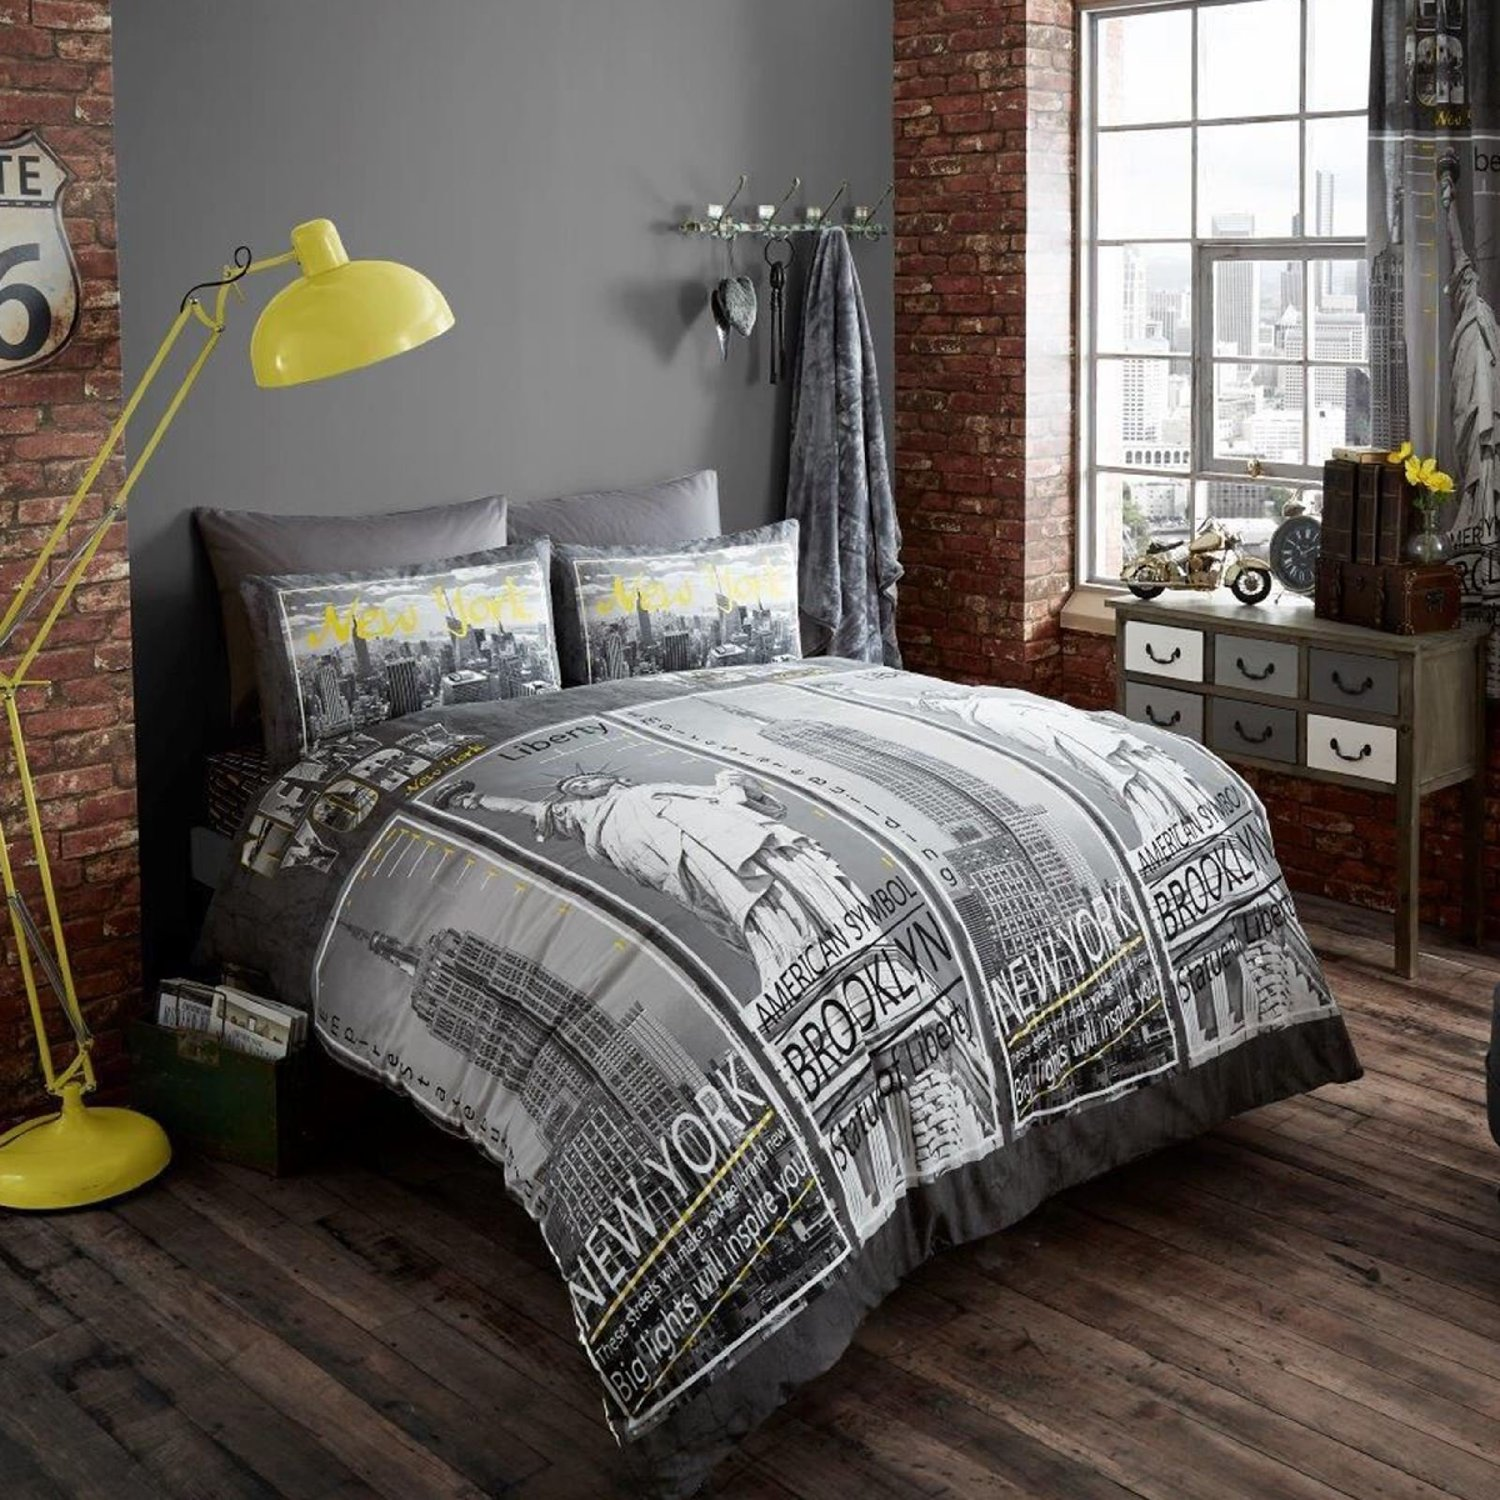 London Themed Bedroom